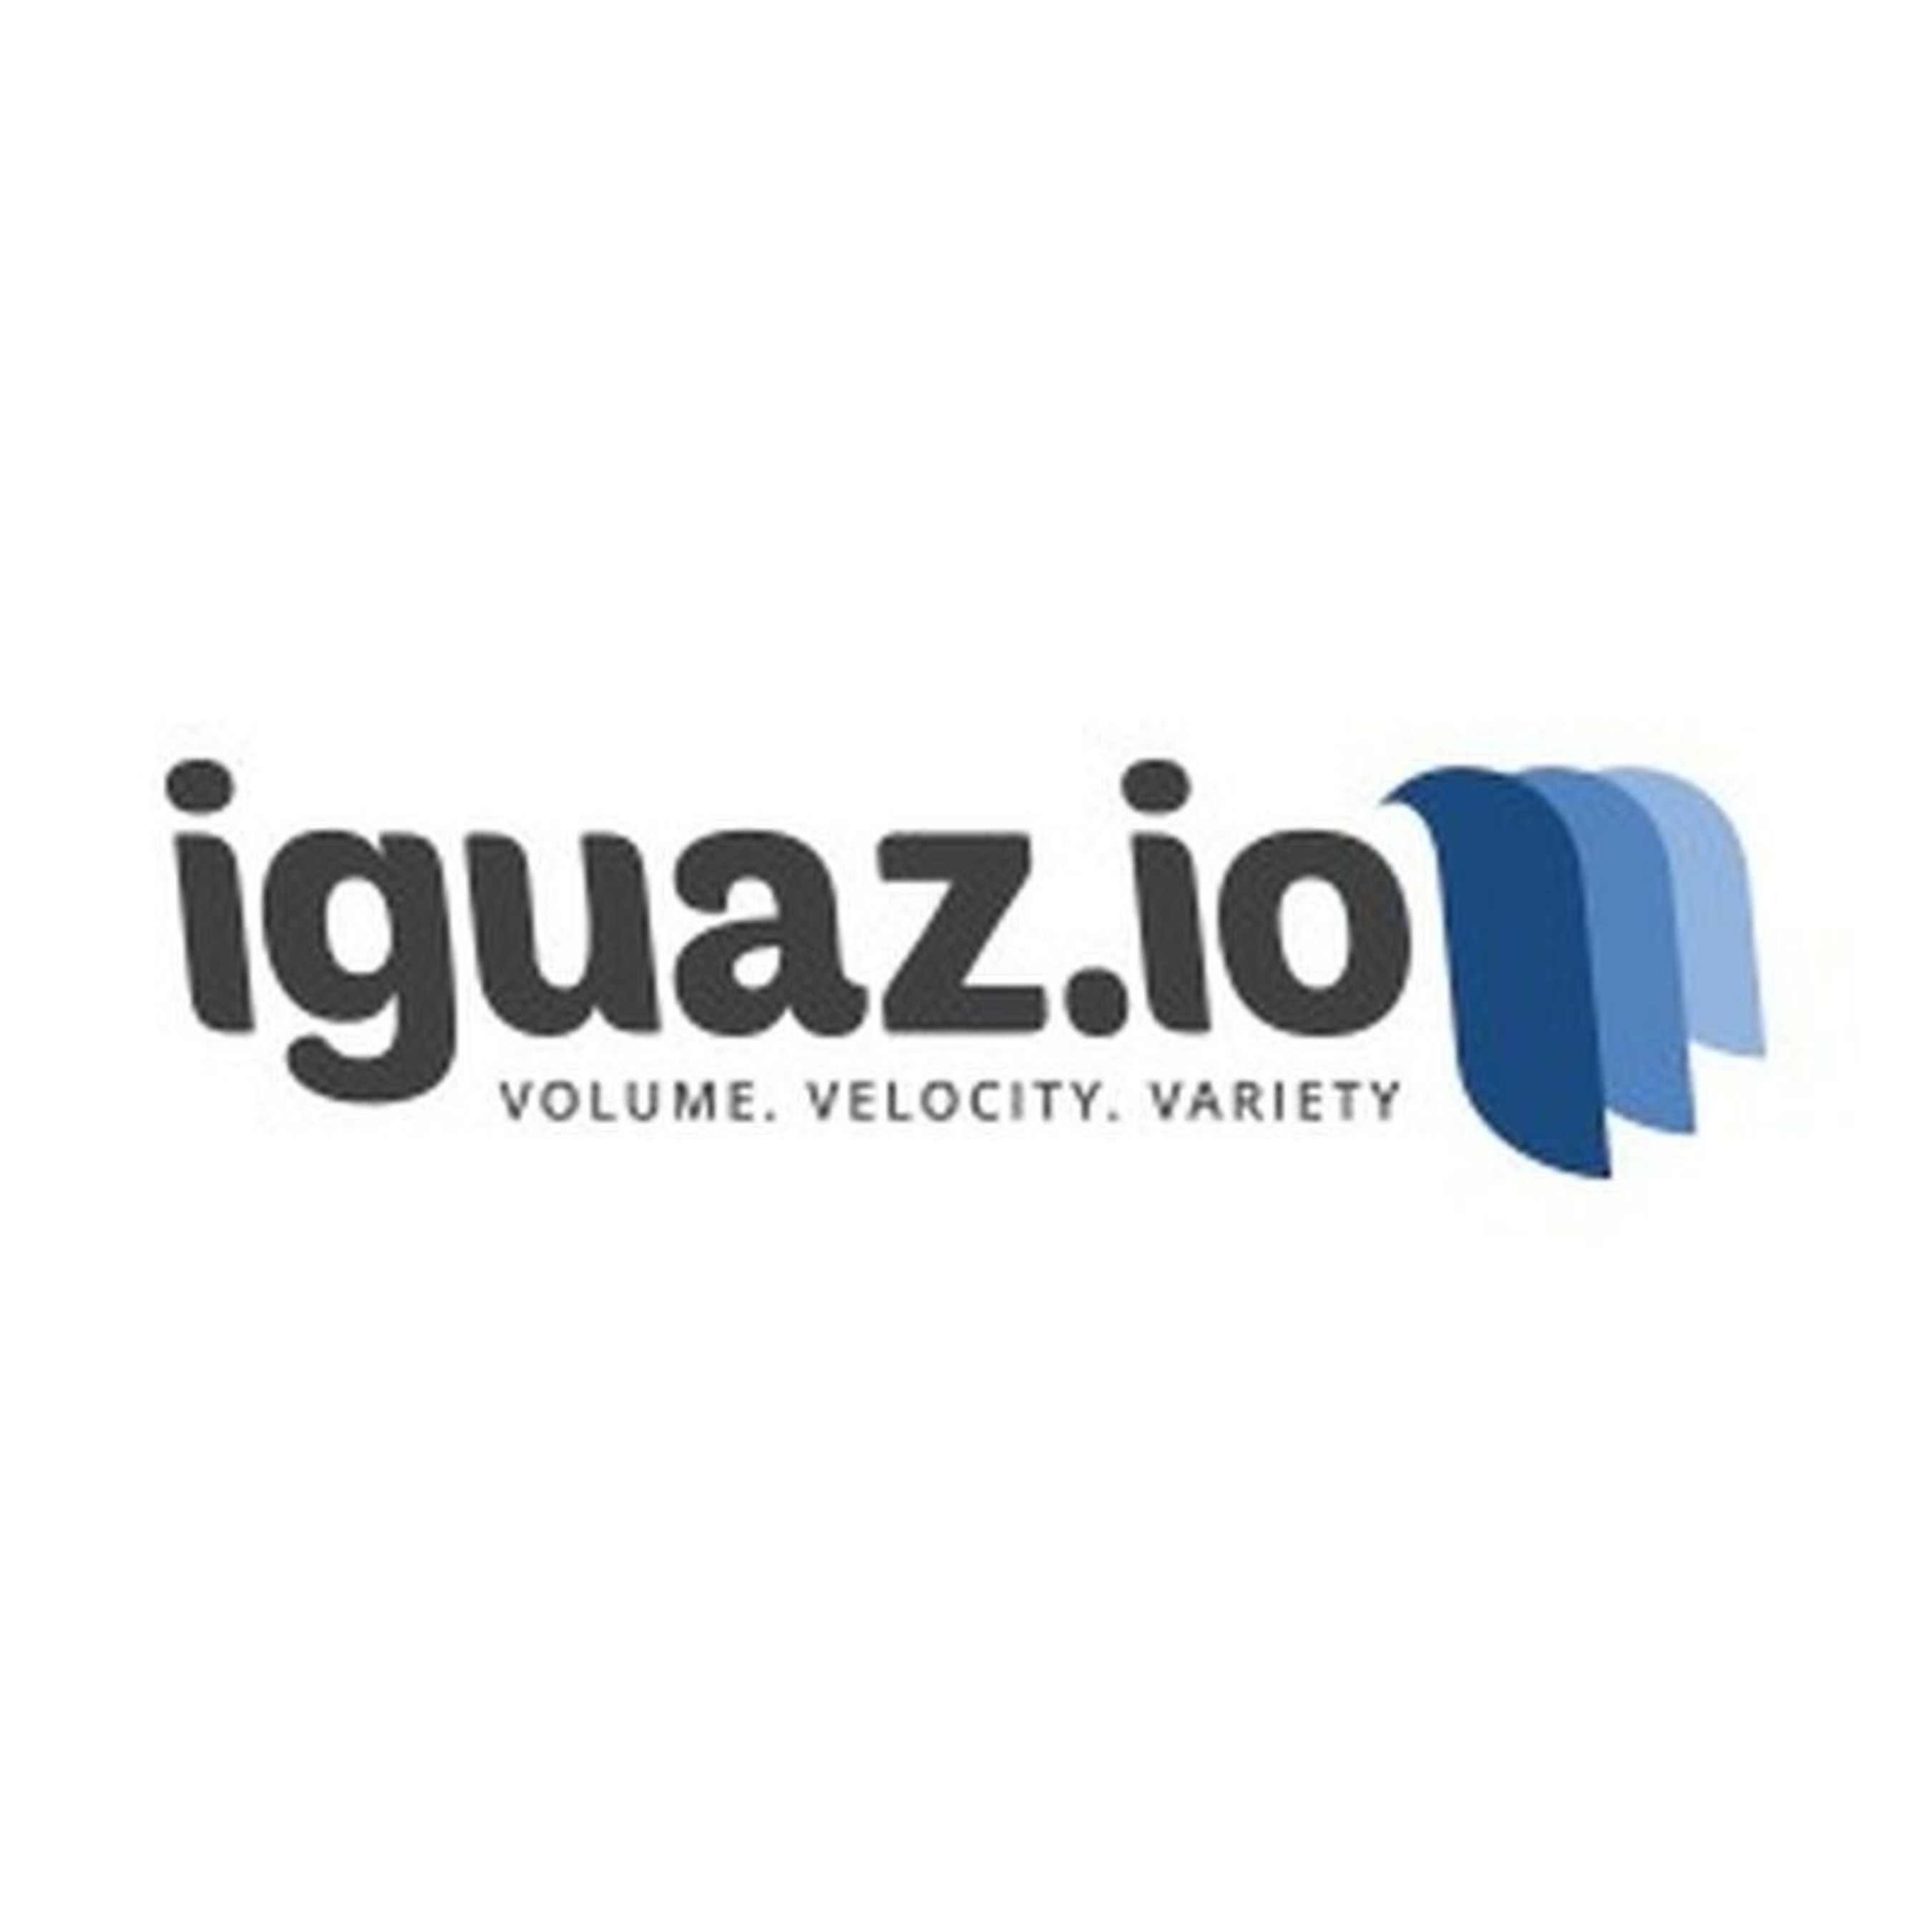 Iguaz.io Raises $15 Million in Series A Funding to Disrupt Big Data Storage